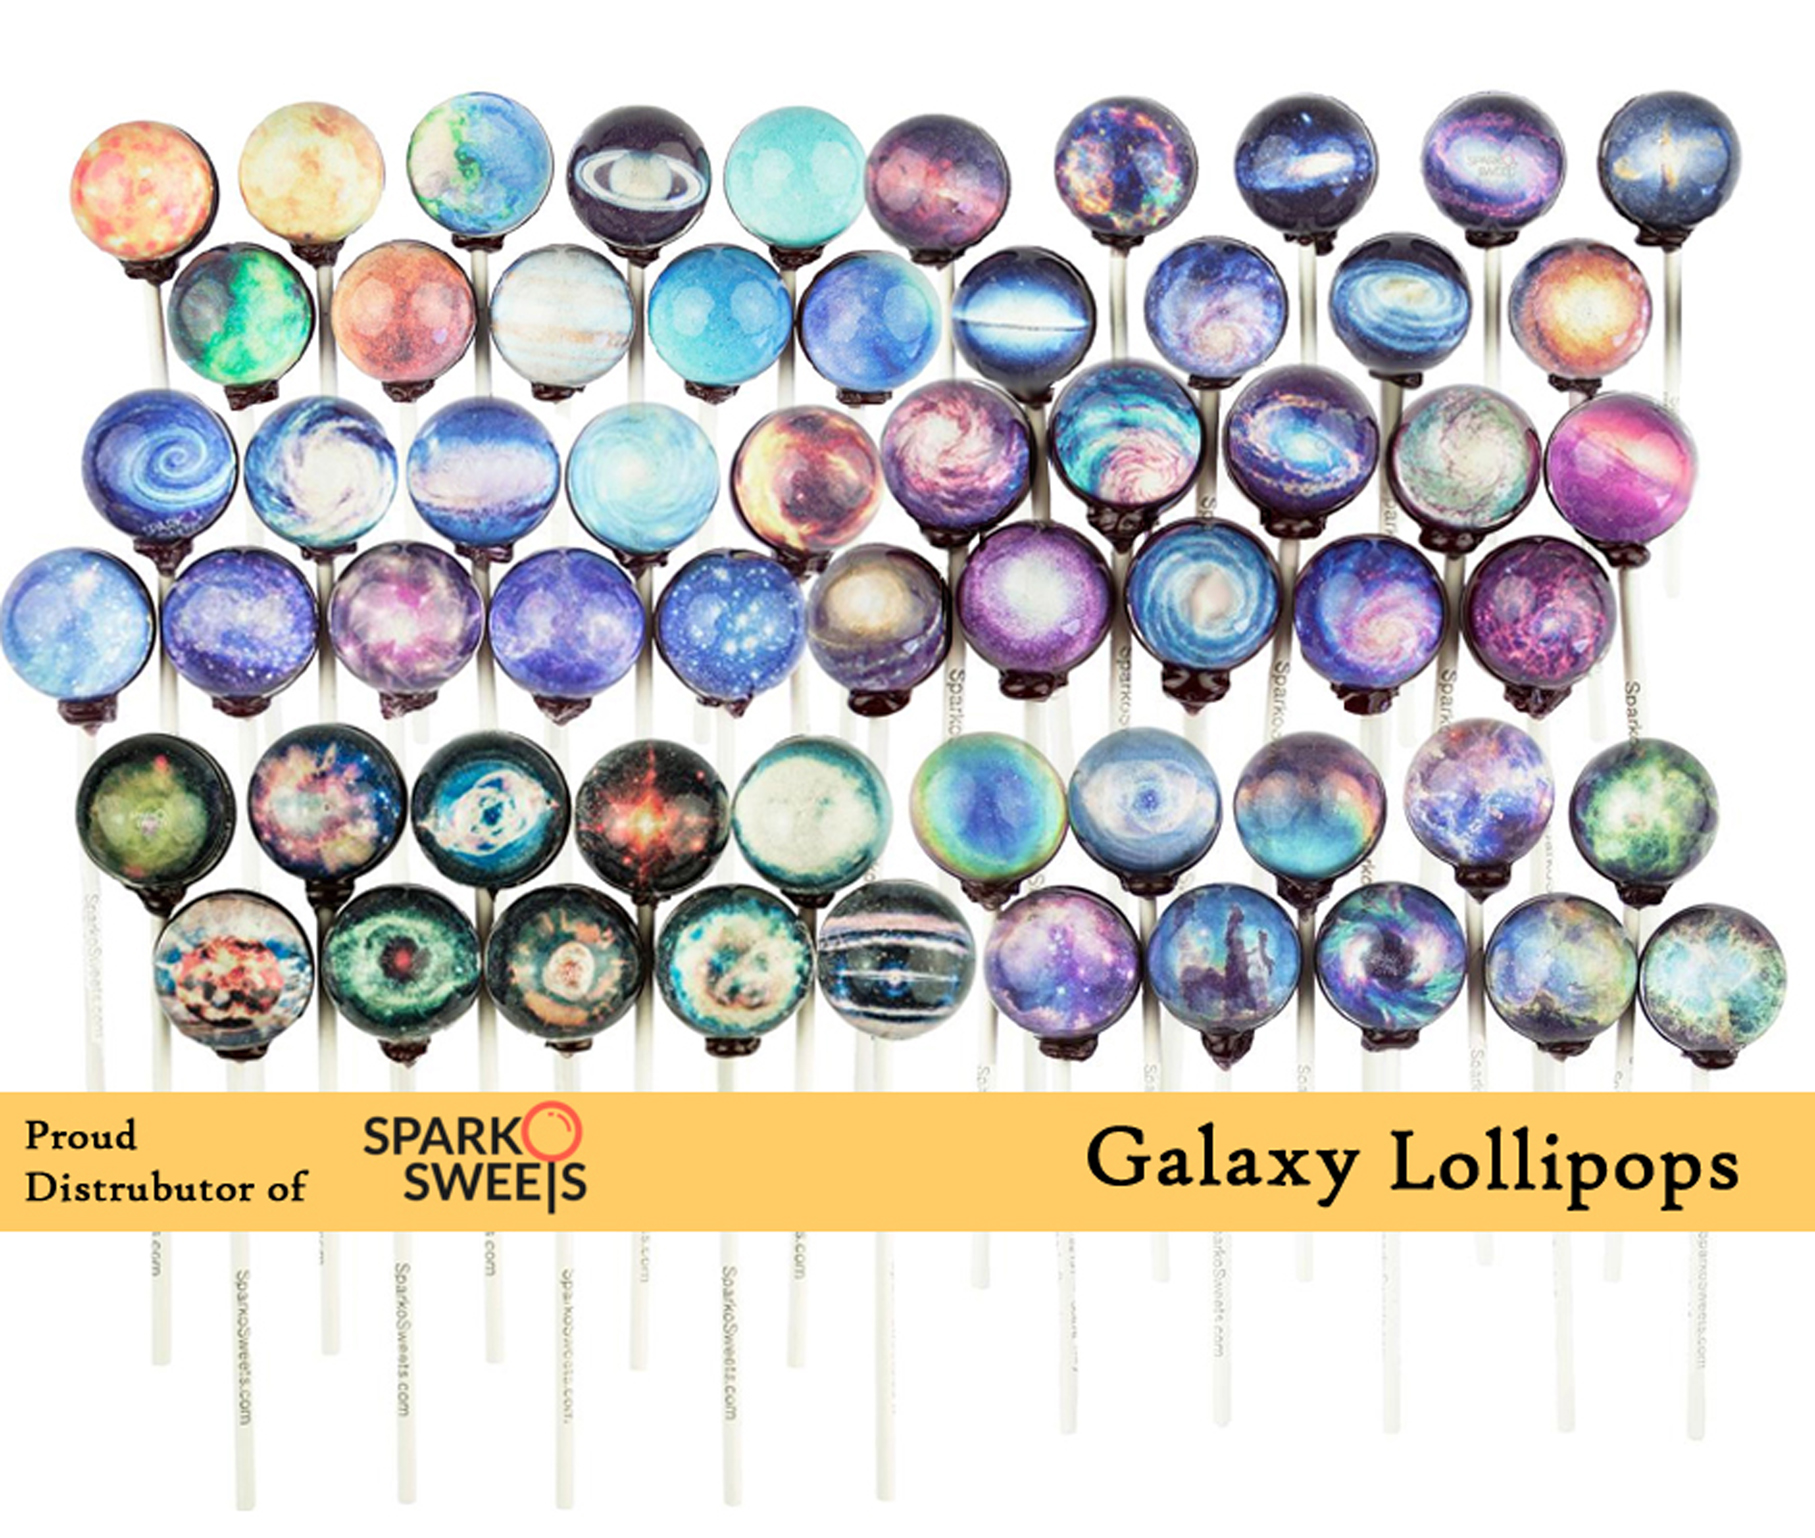 Missing image <galaxypopsgroup.jpg> Group: 3015 - Galaxy Lollipops - Bulk